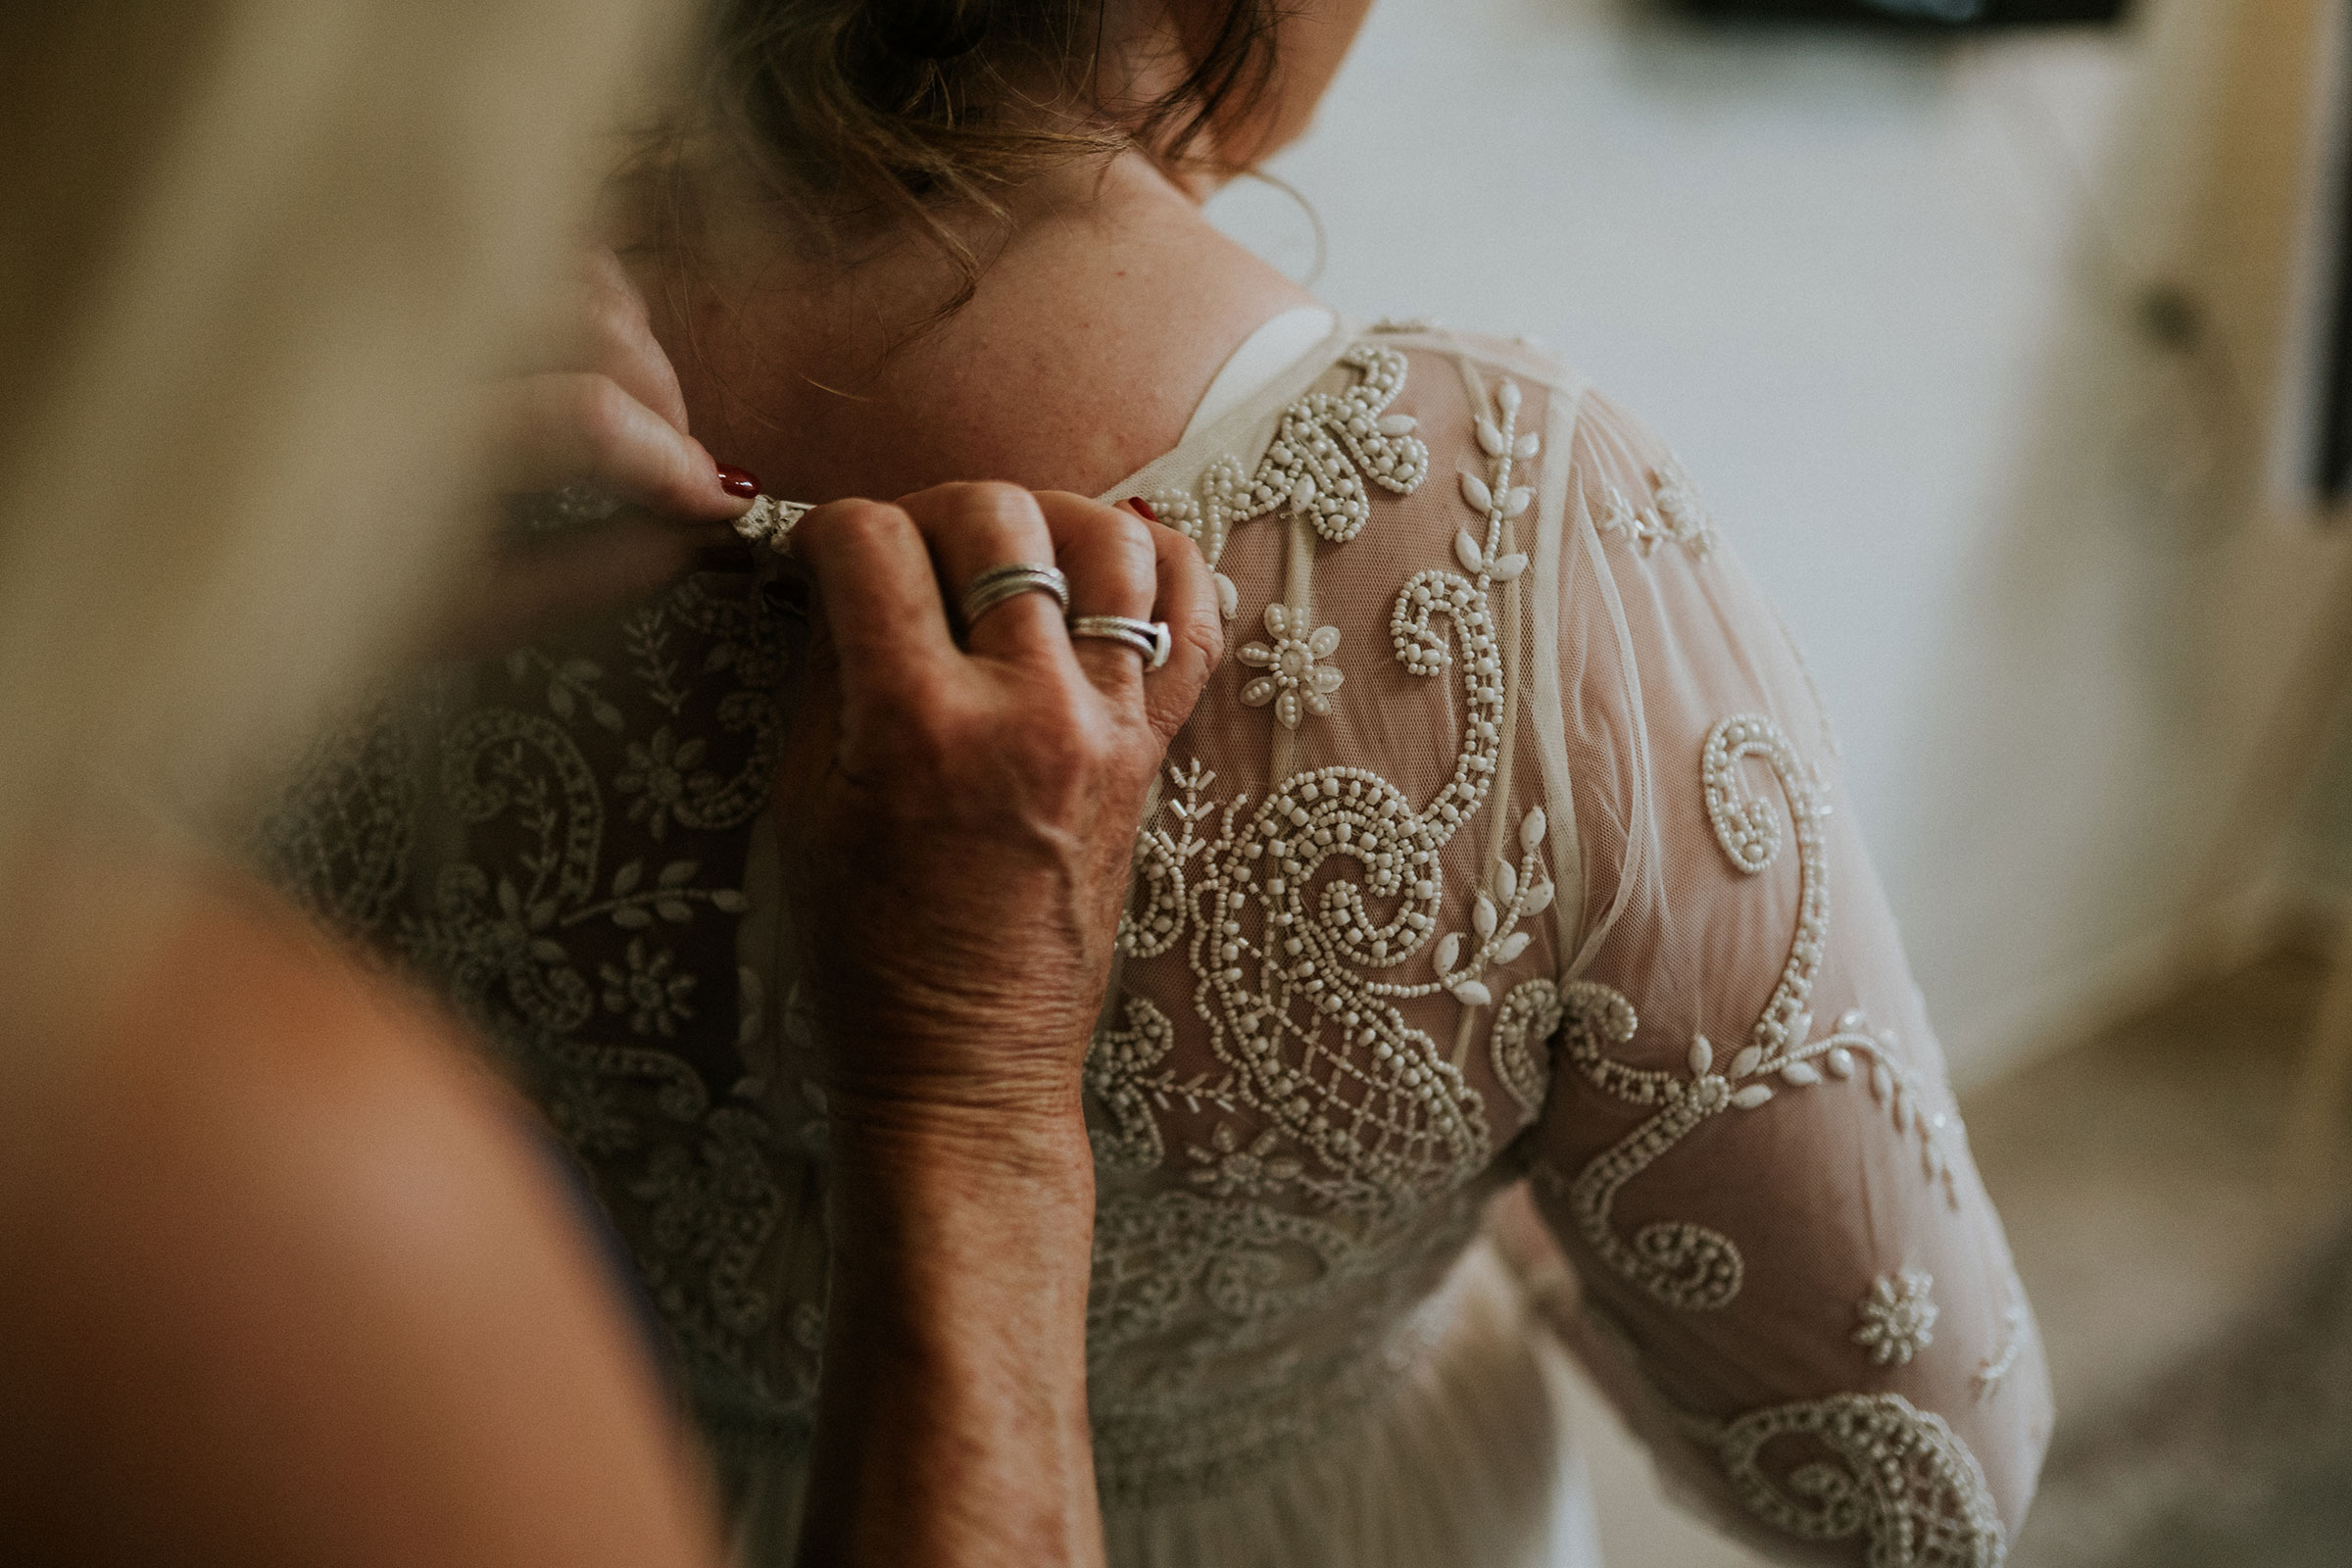 mother-helping-bride-put-dress-on-elopement-salisbury-house-desmoines-iowa-raelyn-ramey-photography.jpg